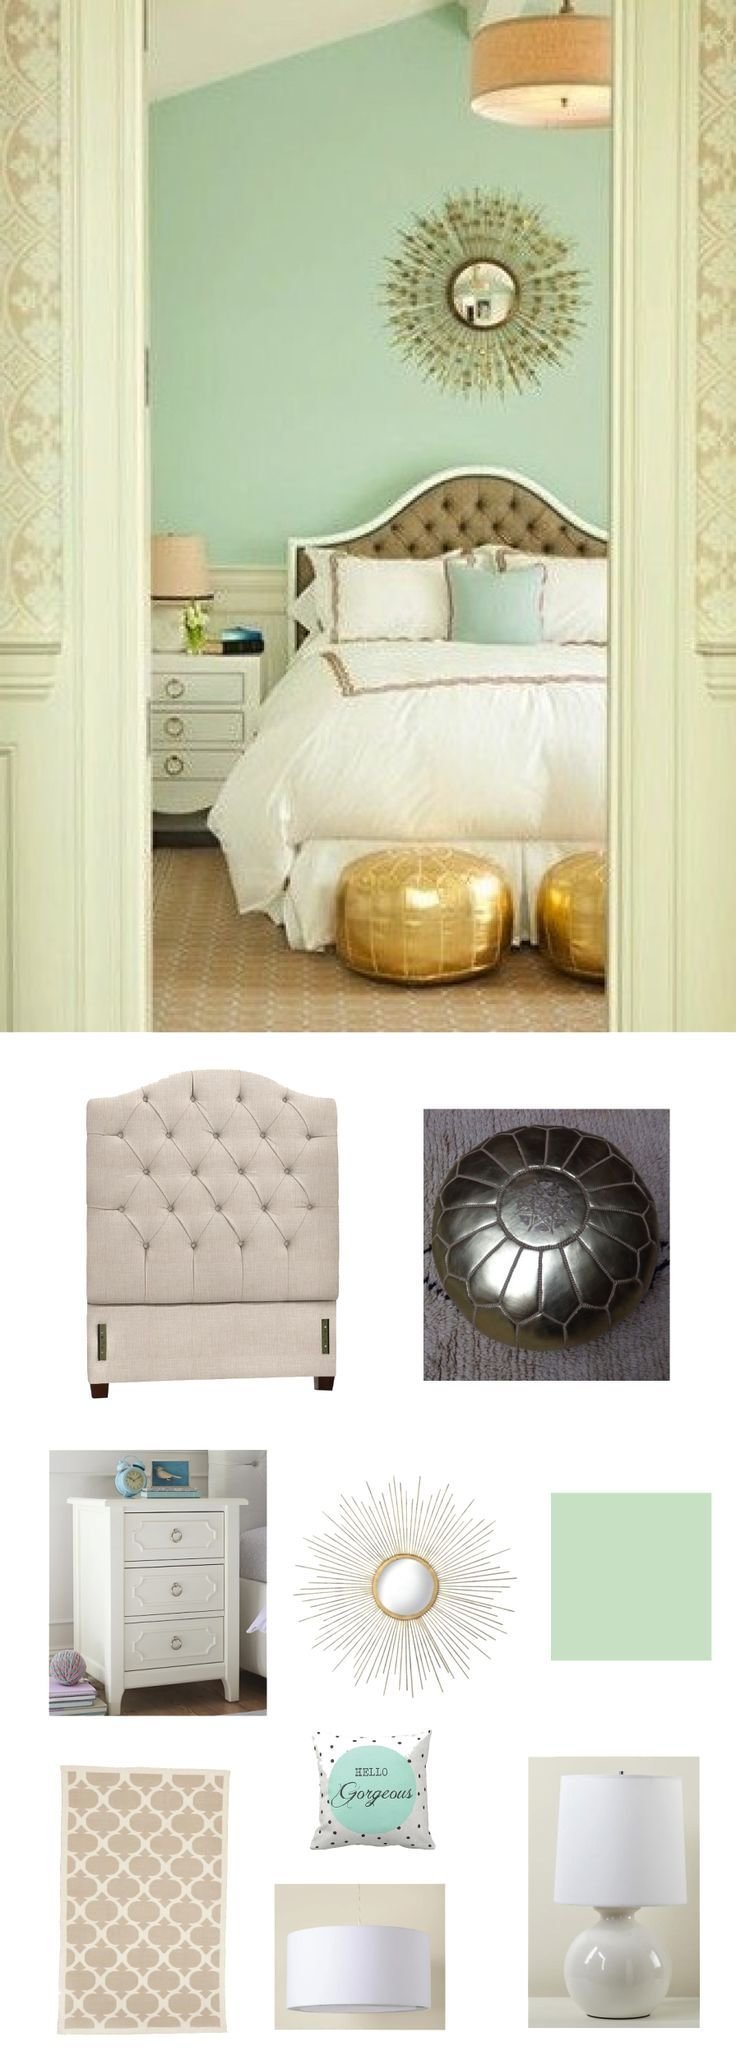 Best 25 Best Ideas About Green And Gold On Pinterest Gold With Pictures